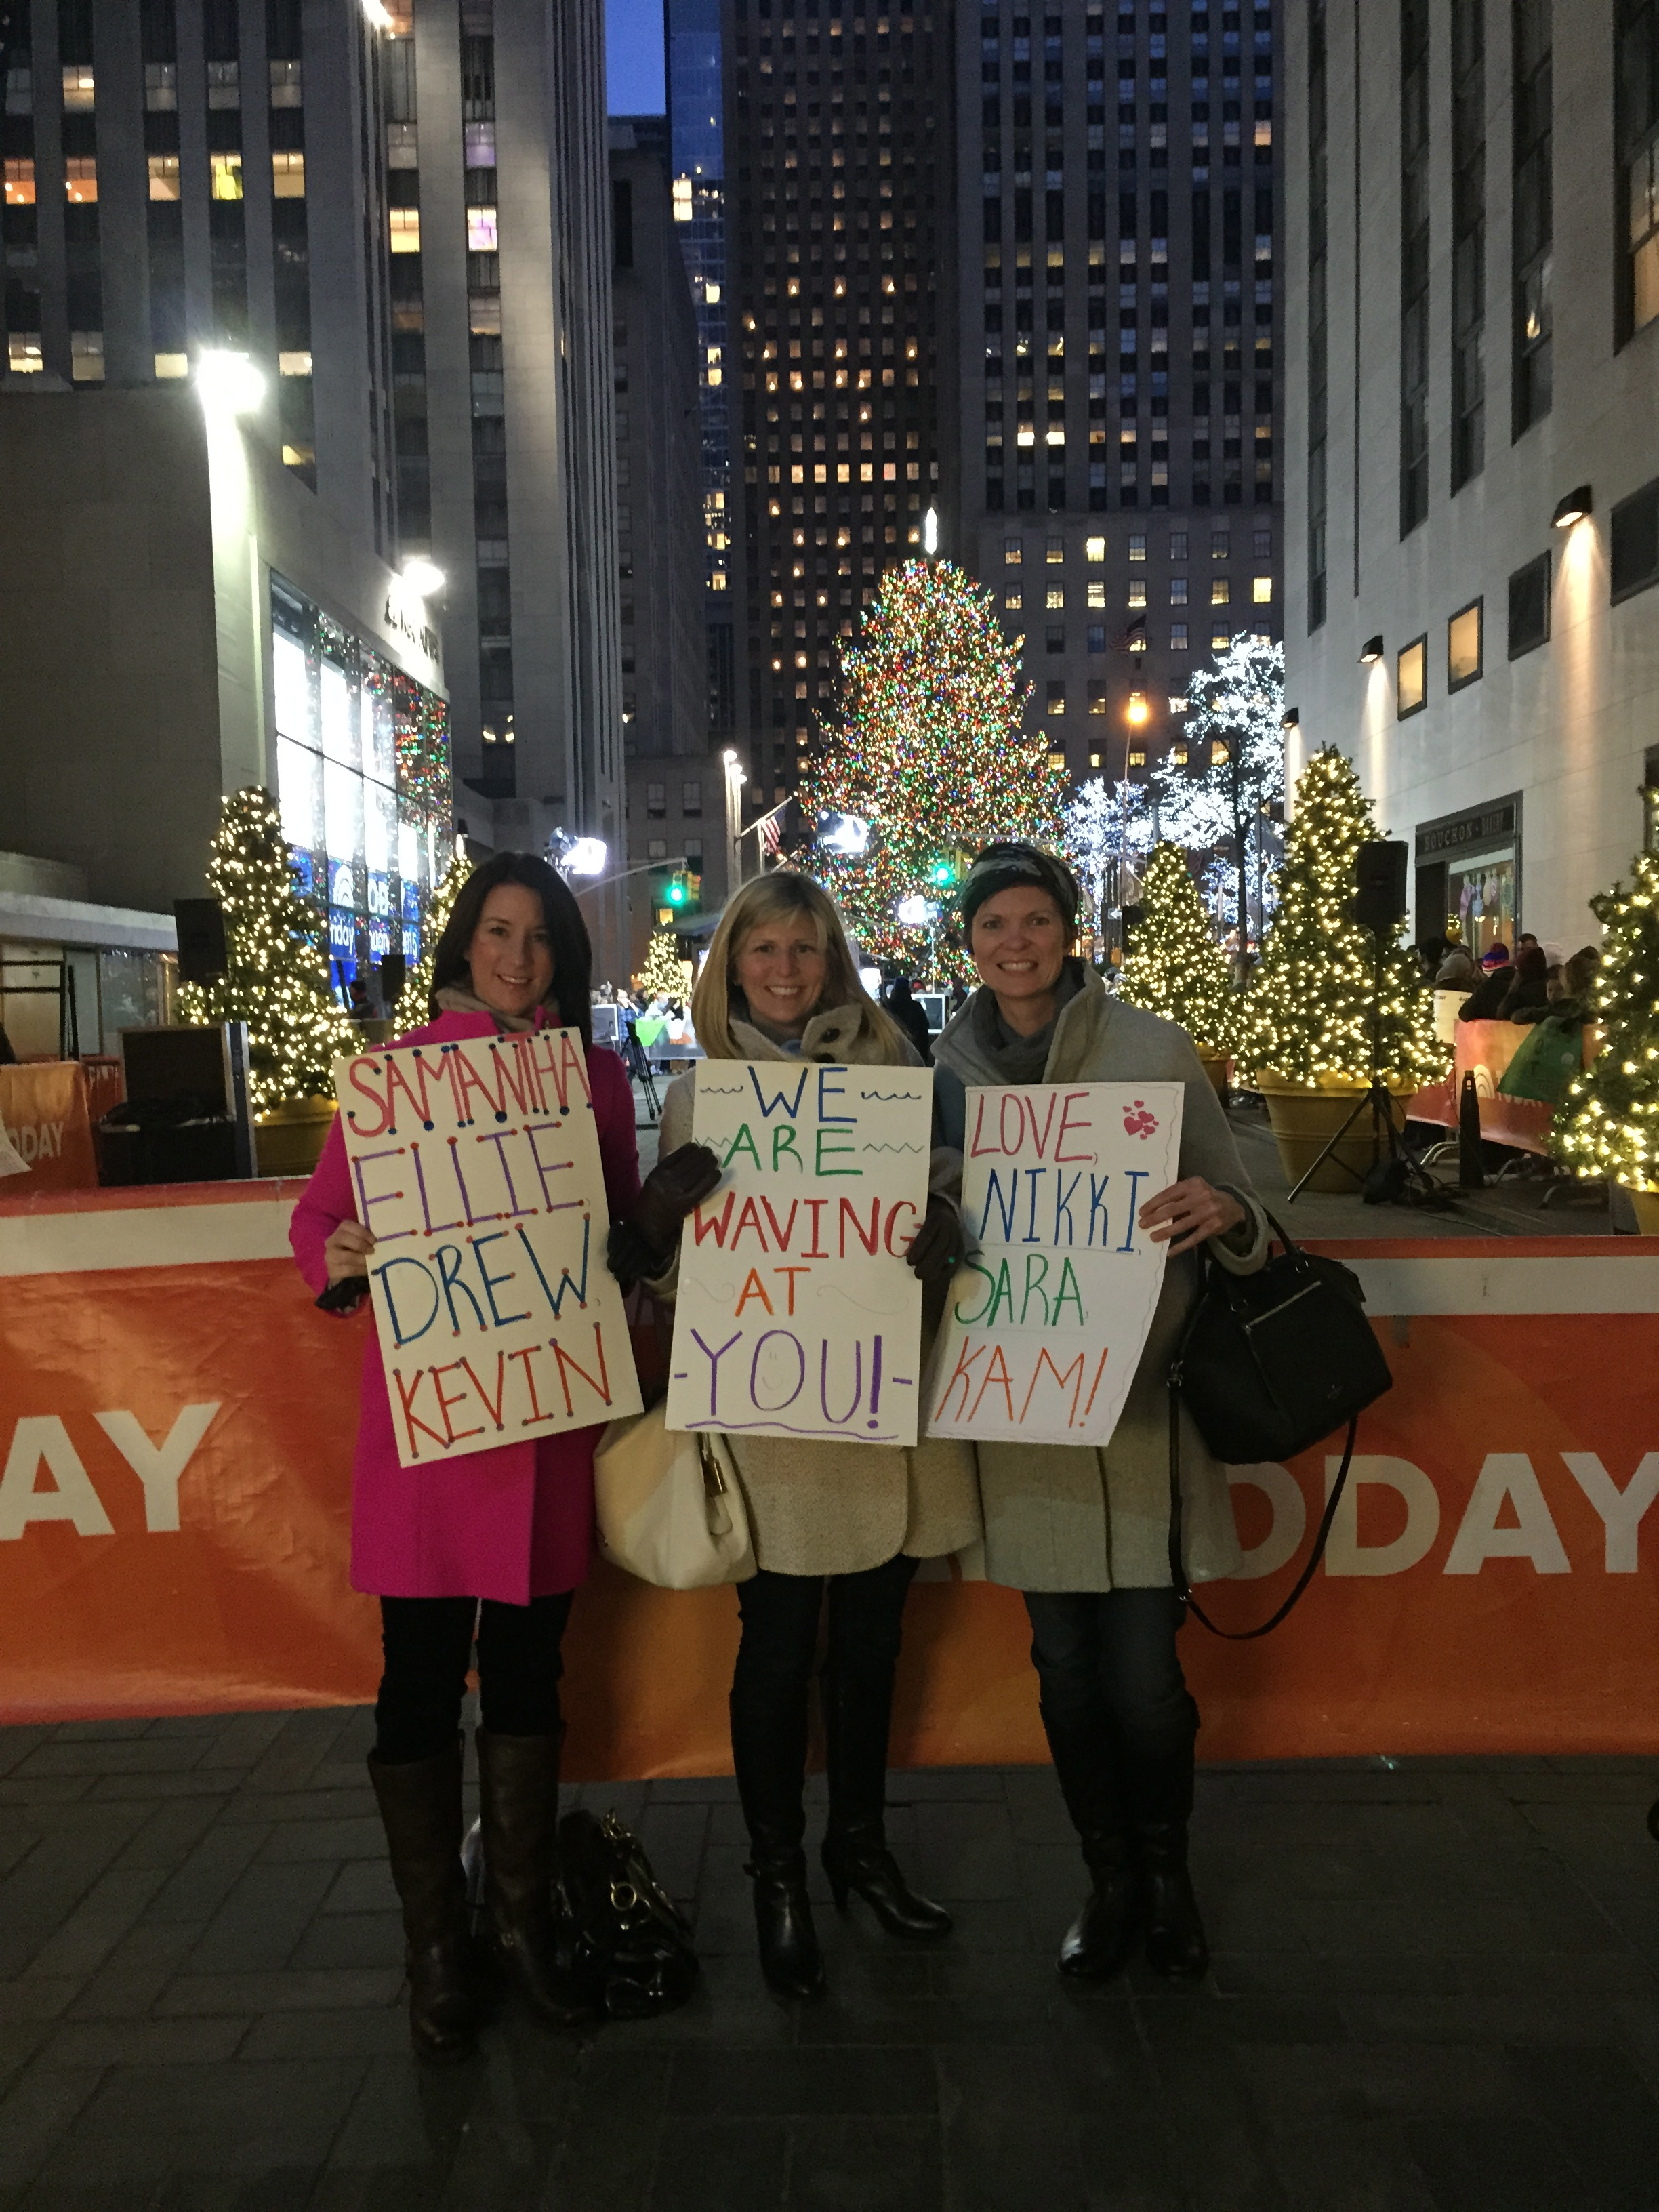 Nikki, Kam and I actually went to New York about 10 years ago for the New York gift and home decor market.  We went to the Today show crowd with similar signs and Al Rocker actually talked to each of us on the air.  We were famous.  So we went for a reunion with more family members to wave at on the signs this time and just got a wave but if you look really close and pay attention you can see us waving in the crowd once.  Success!  www.saranobledesigns.com  For the record this ridiculously early event is always on my list and Nikki goes with about the 1/2 the excitement and Kam goes because she loves me.